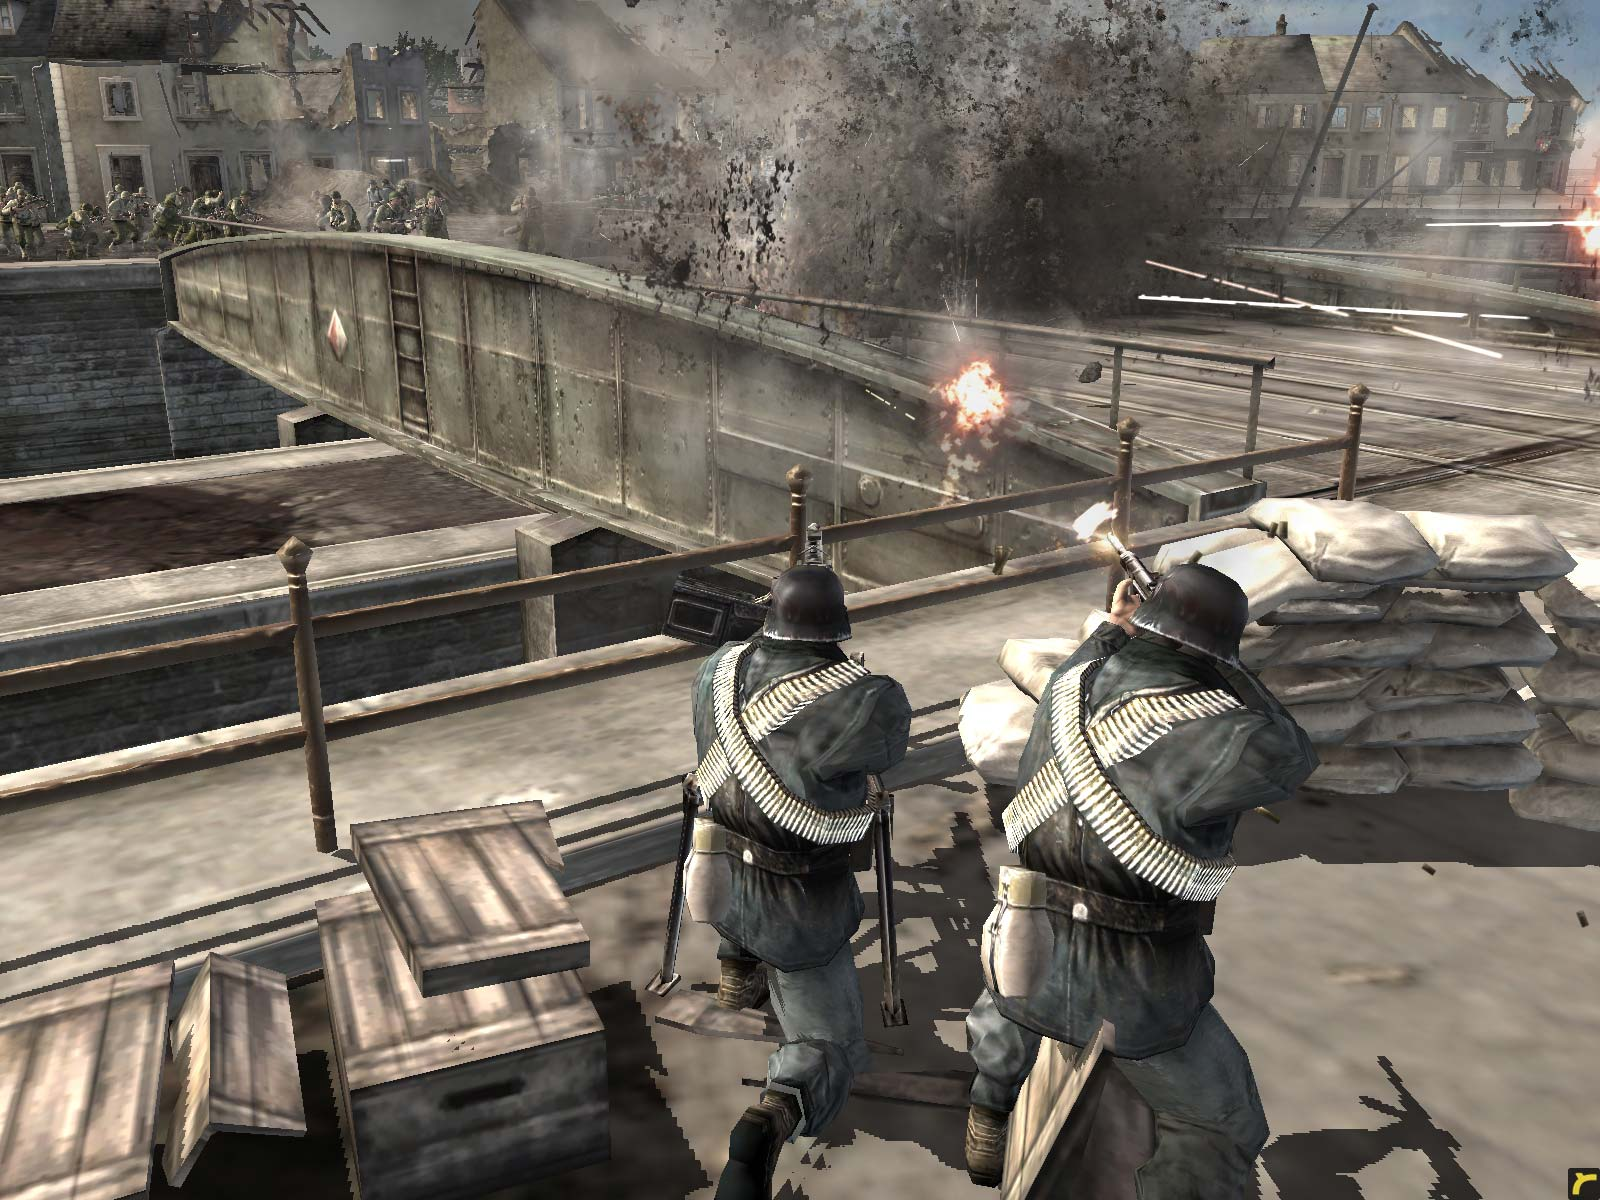 Game Patches Company Of Heroes 1 6 1 To 1 7 0 Patch Megagames